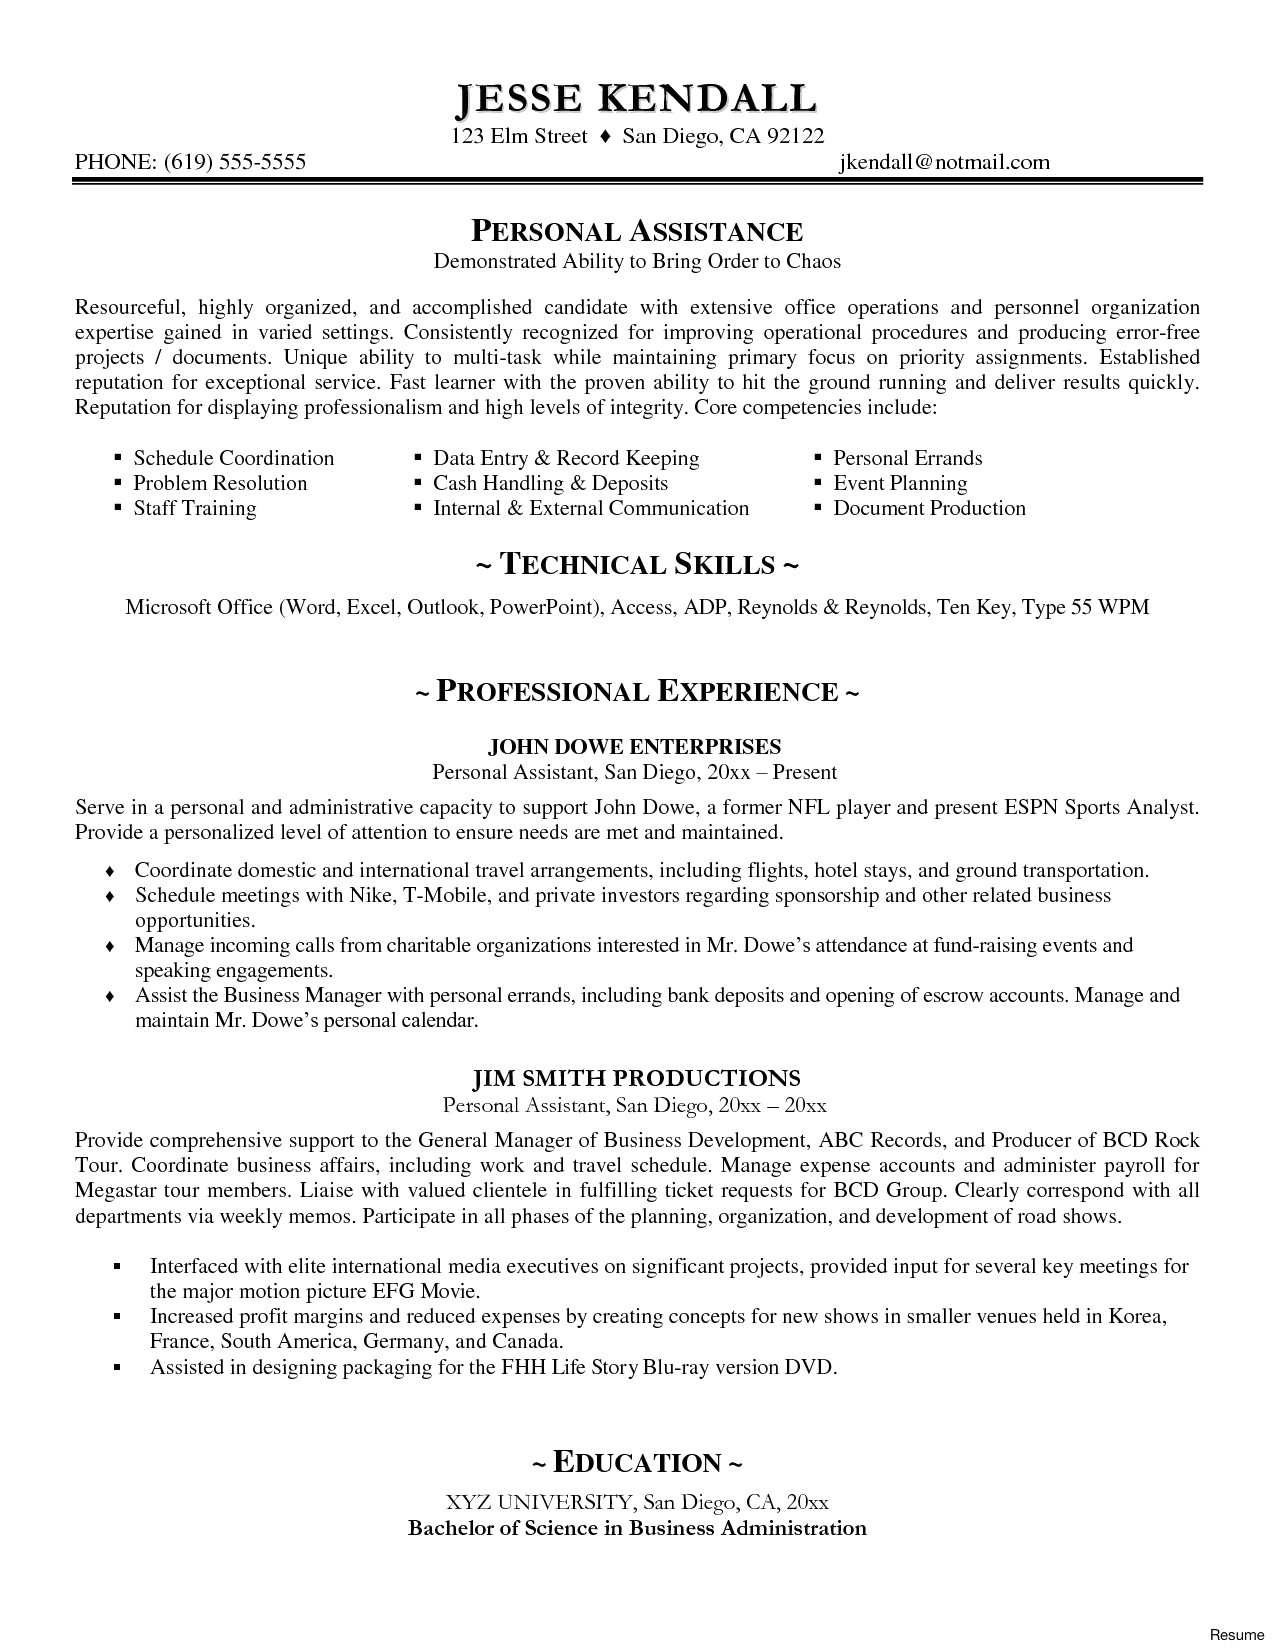 Resume Cover Letter Template Google Docs - 46 Inspirational Resume Google Docs